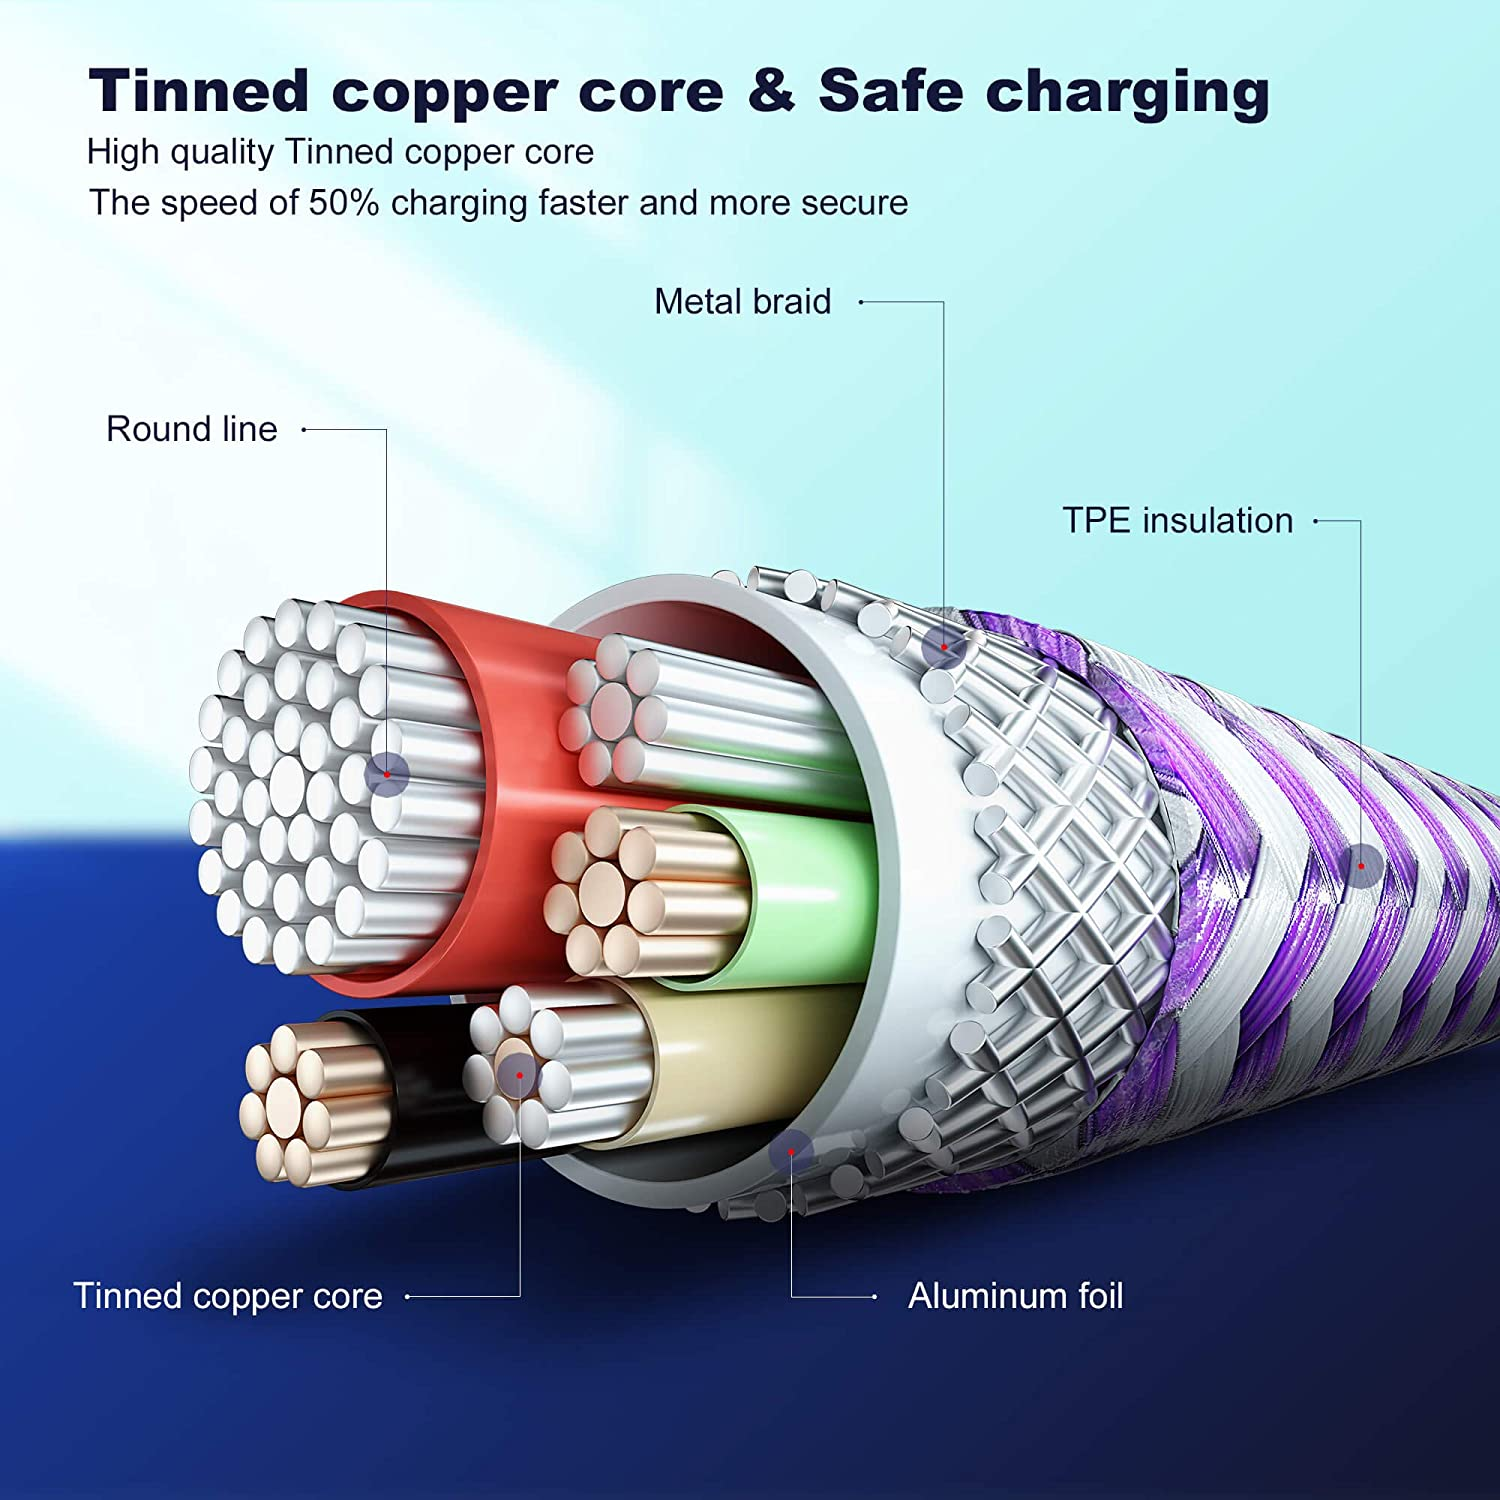 Fast Charging Syncing SKEJER Type c Data Cable Nylon Braided Cord Max 60W 3A Type C Charger,SKEJER USB C to C Charger Cable 2 Pack 3.3ft+3.3ft,Purple